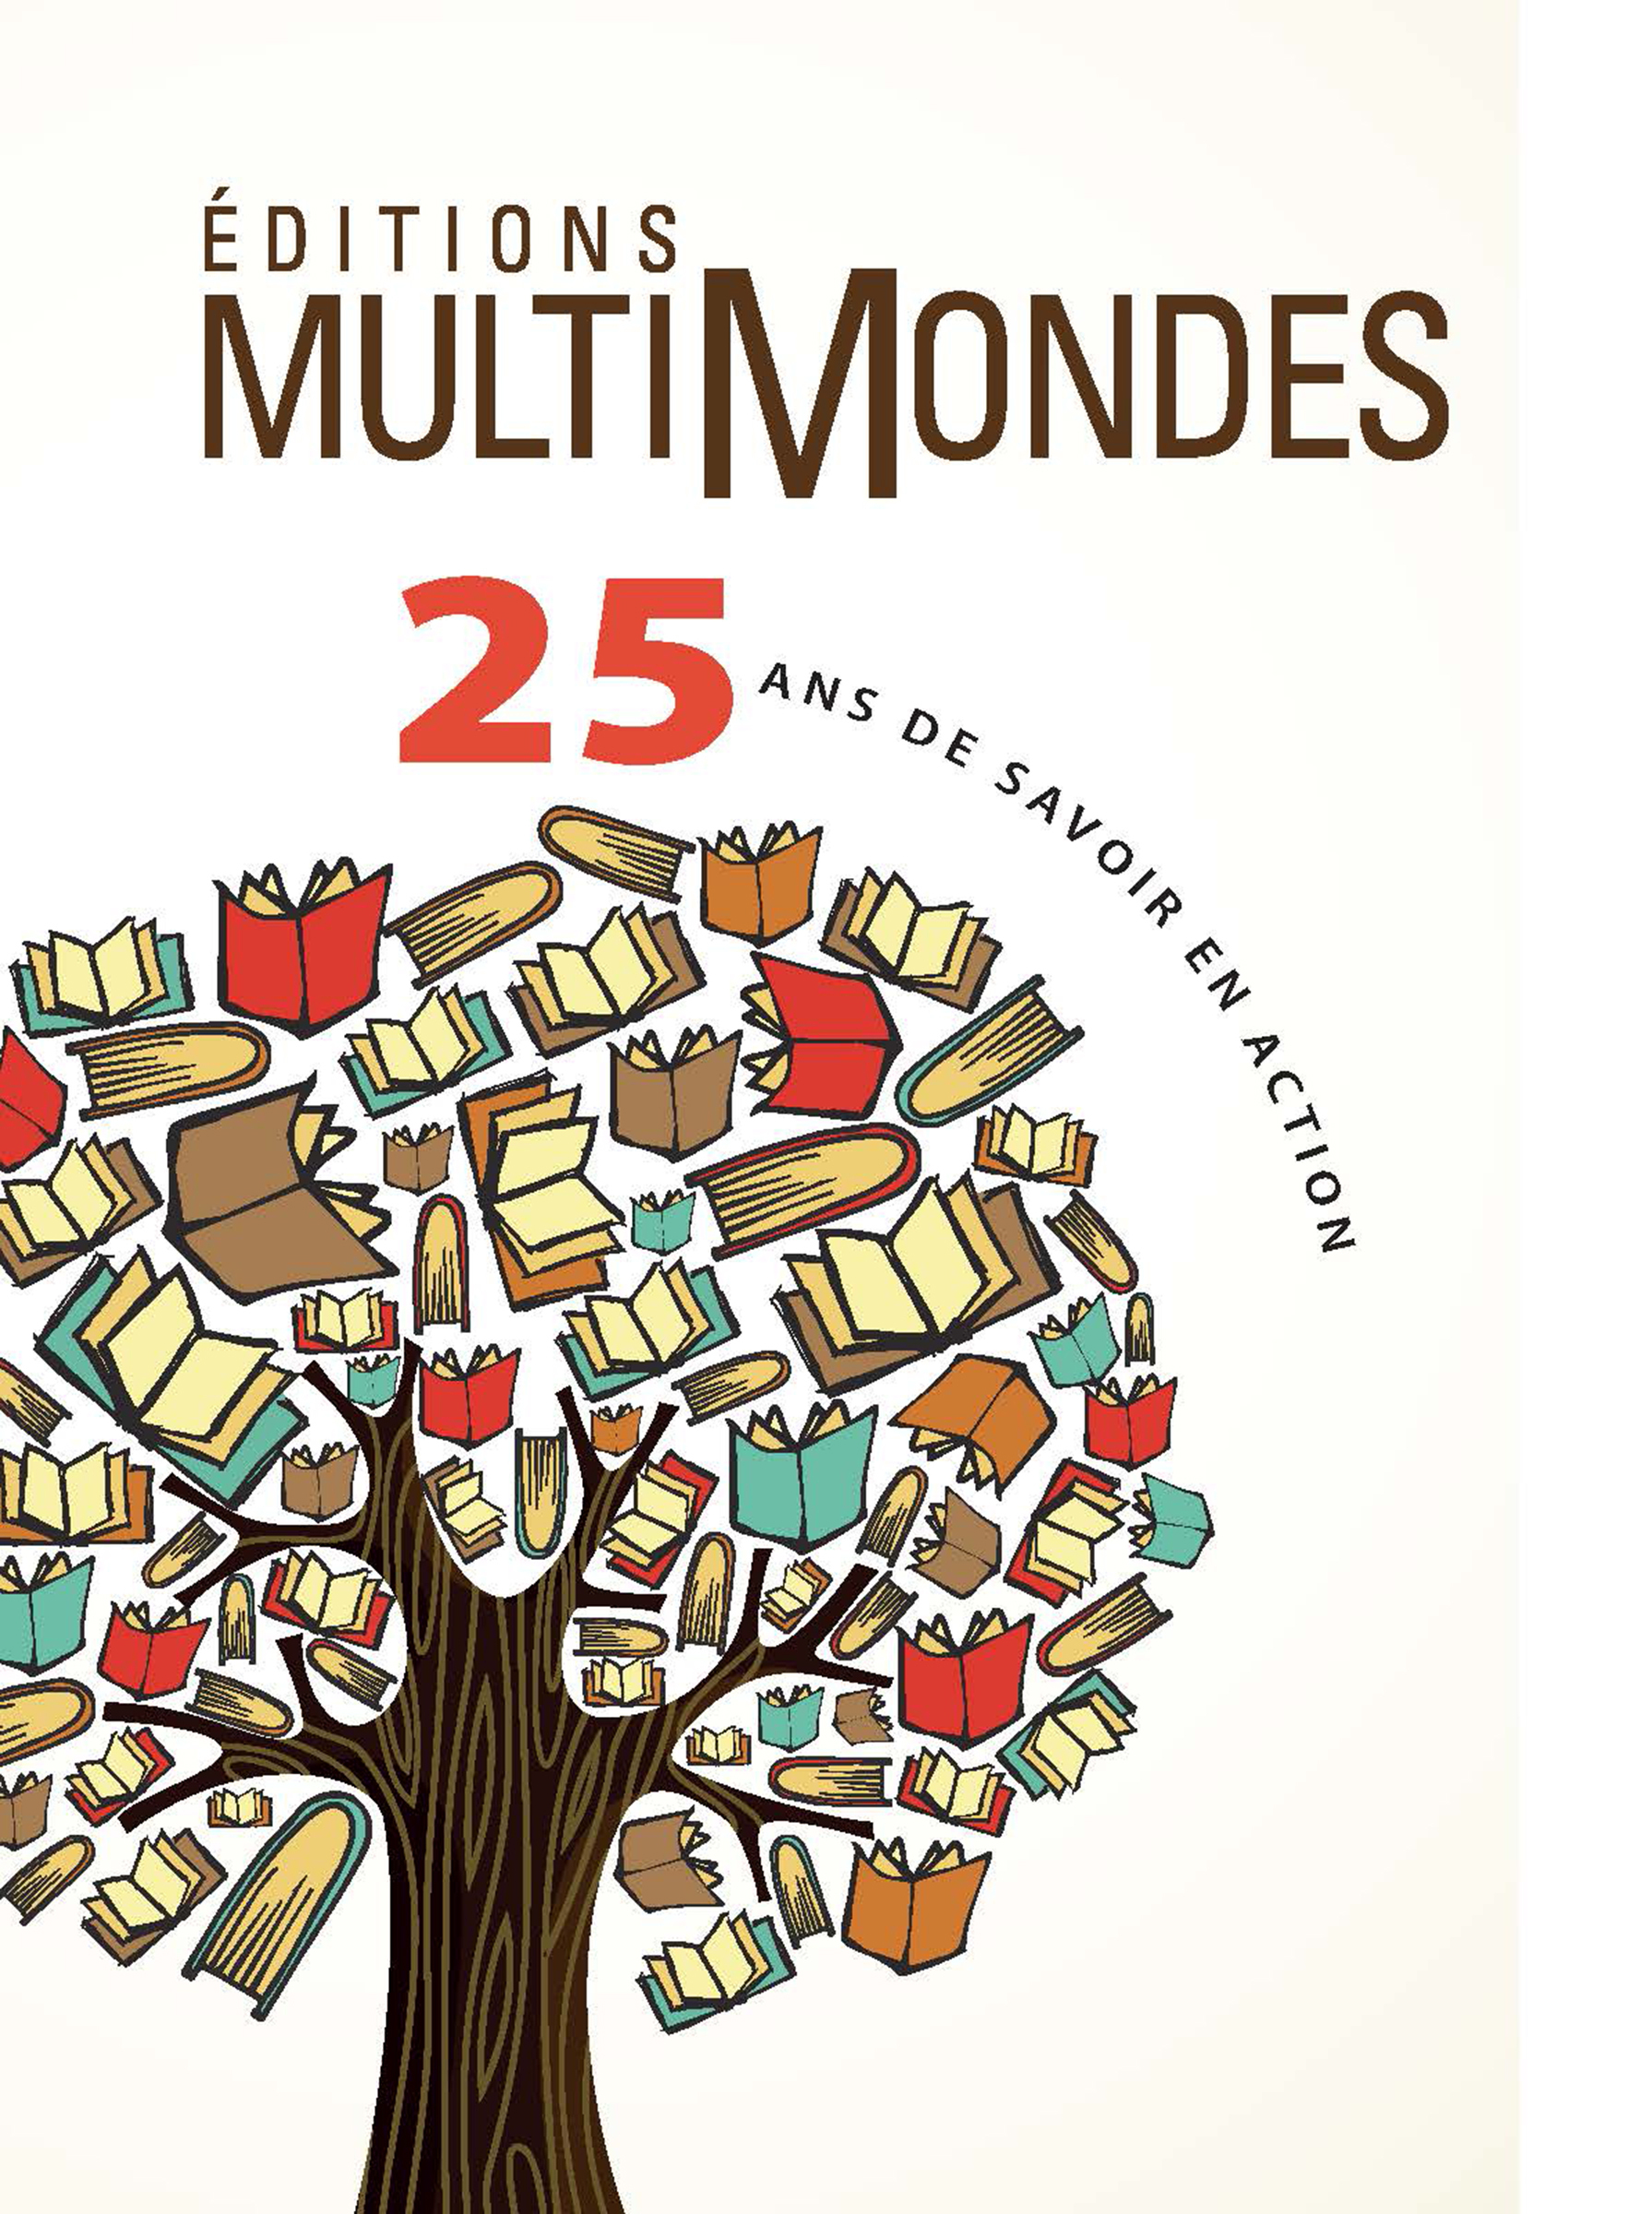 EDITIONS MULTIMONDES, 25 ANS DE SAVOIR EN ACTION